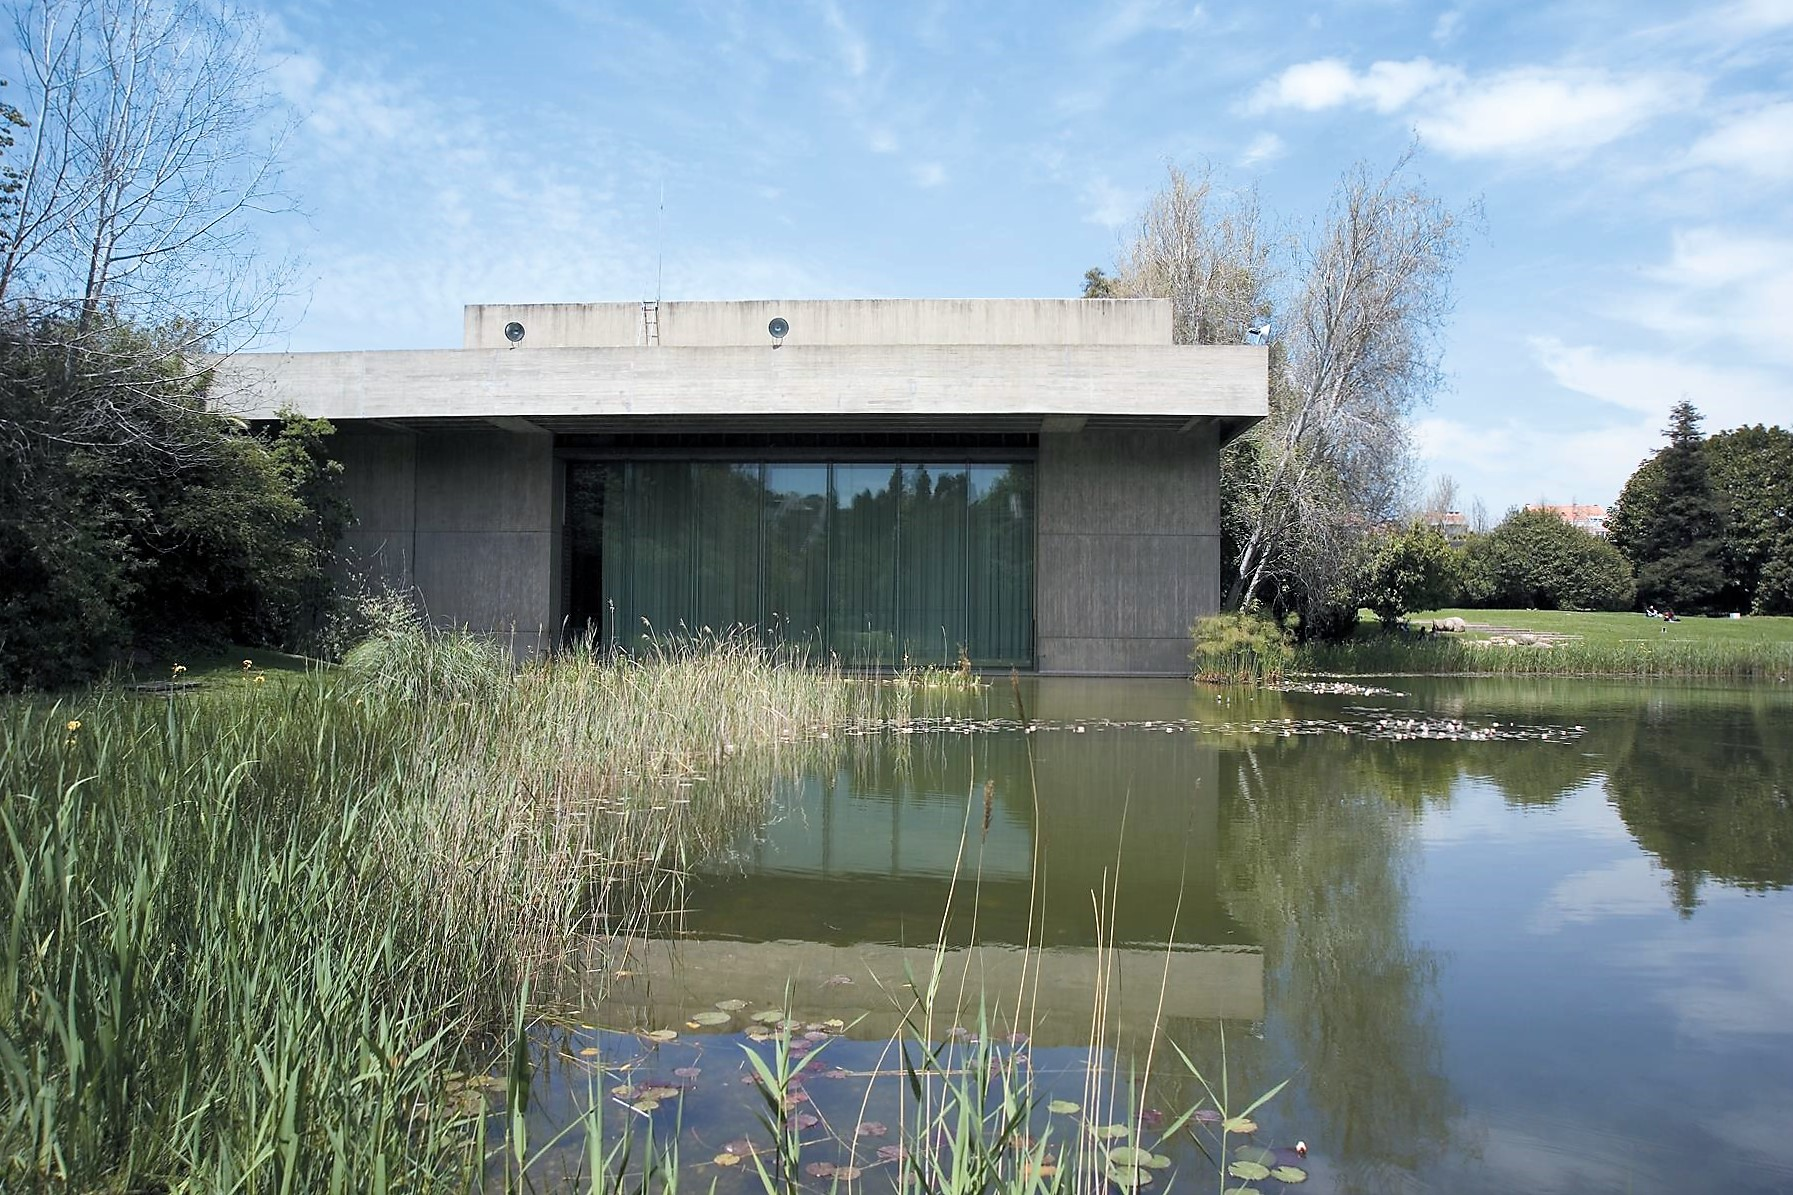 Gulbenkian Garden and Building